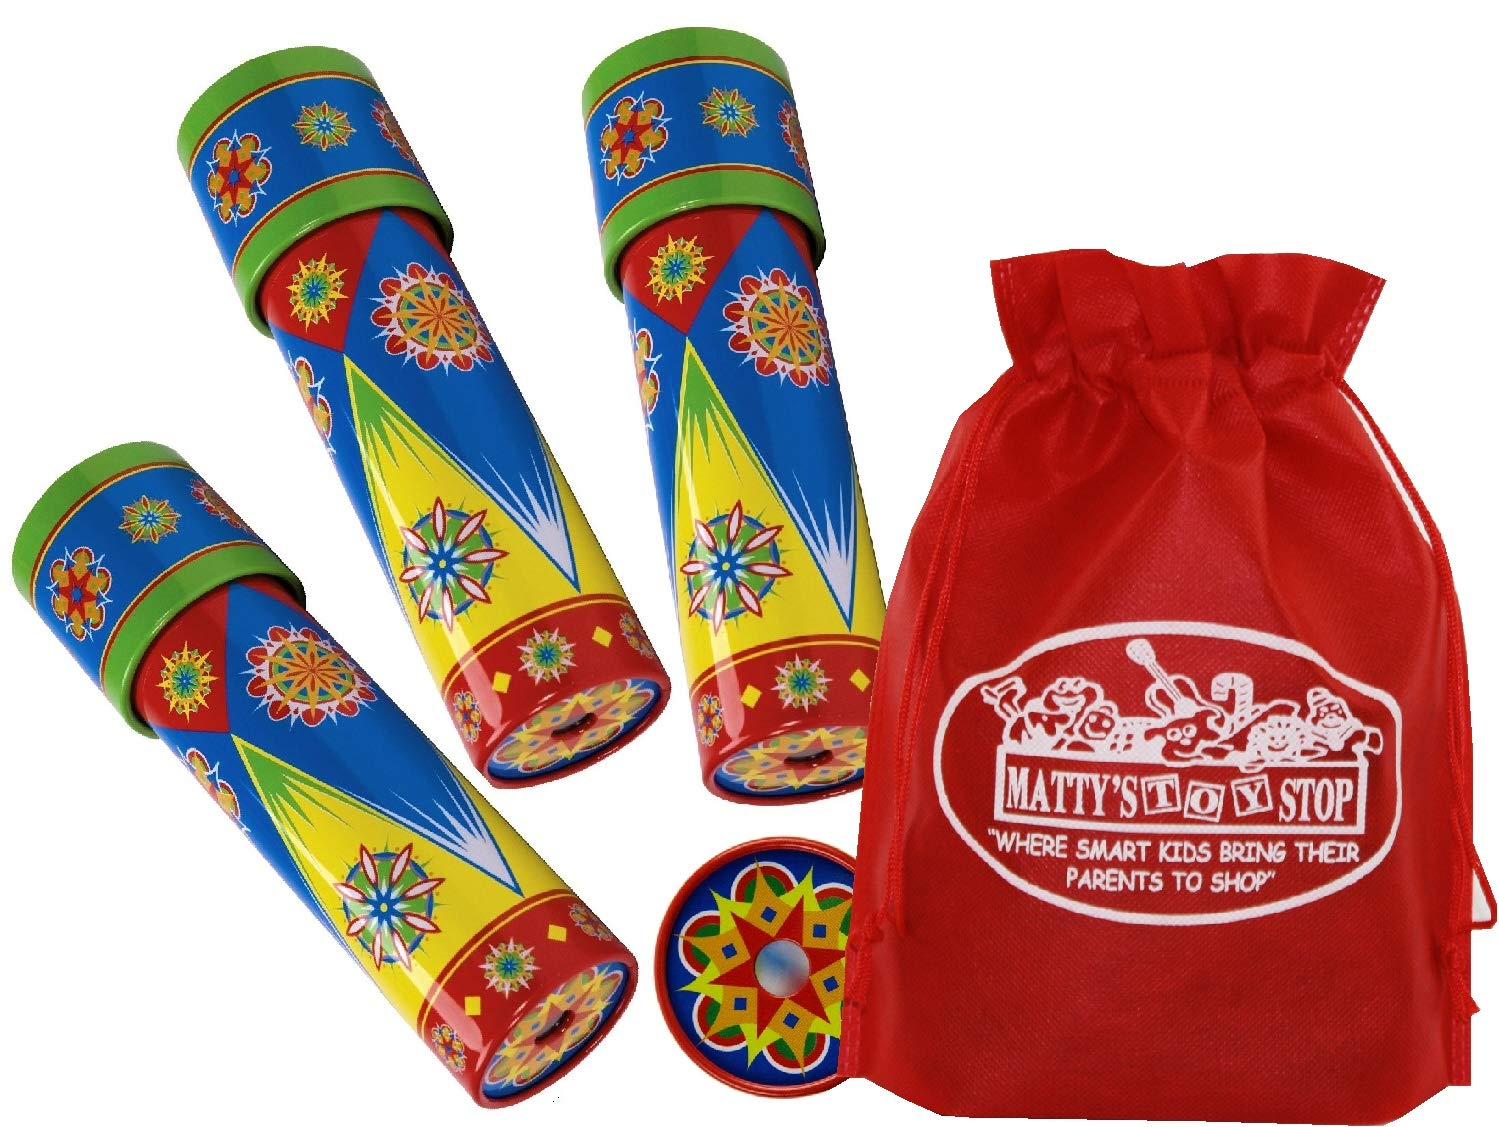 Schylling Classic Tin Kaleidoscope Party Set Bundle Includes Exclusive Matty's Toy Stop Storage Bag - 3 Pack by Schylling (Image #3)